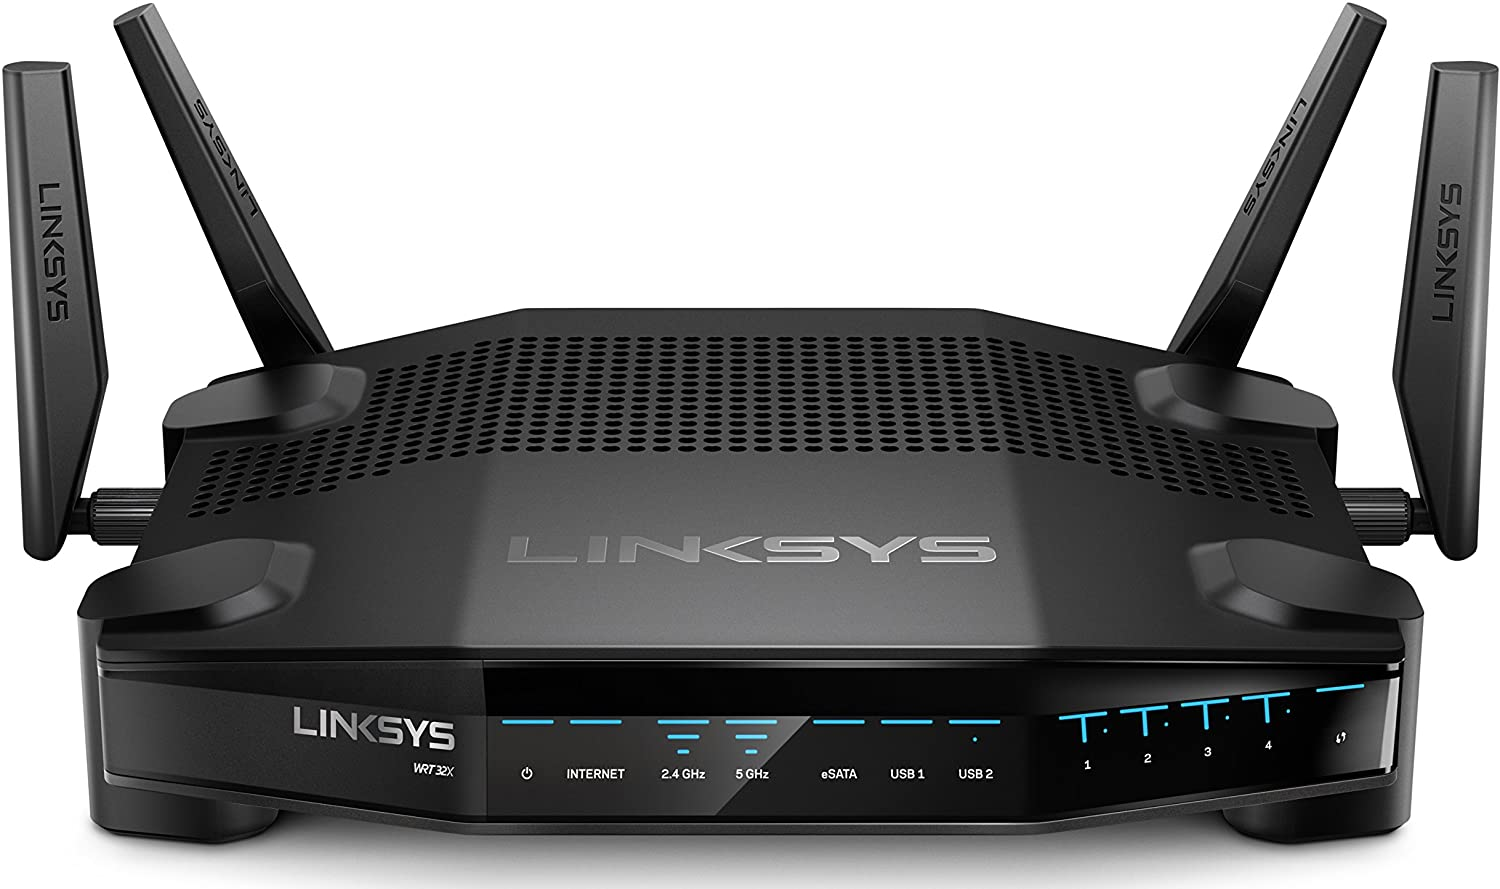 Linksys Wrt32x Ac3200 Dual Band Wi Fi Gaming Router Computer Zubehör